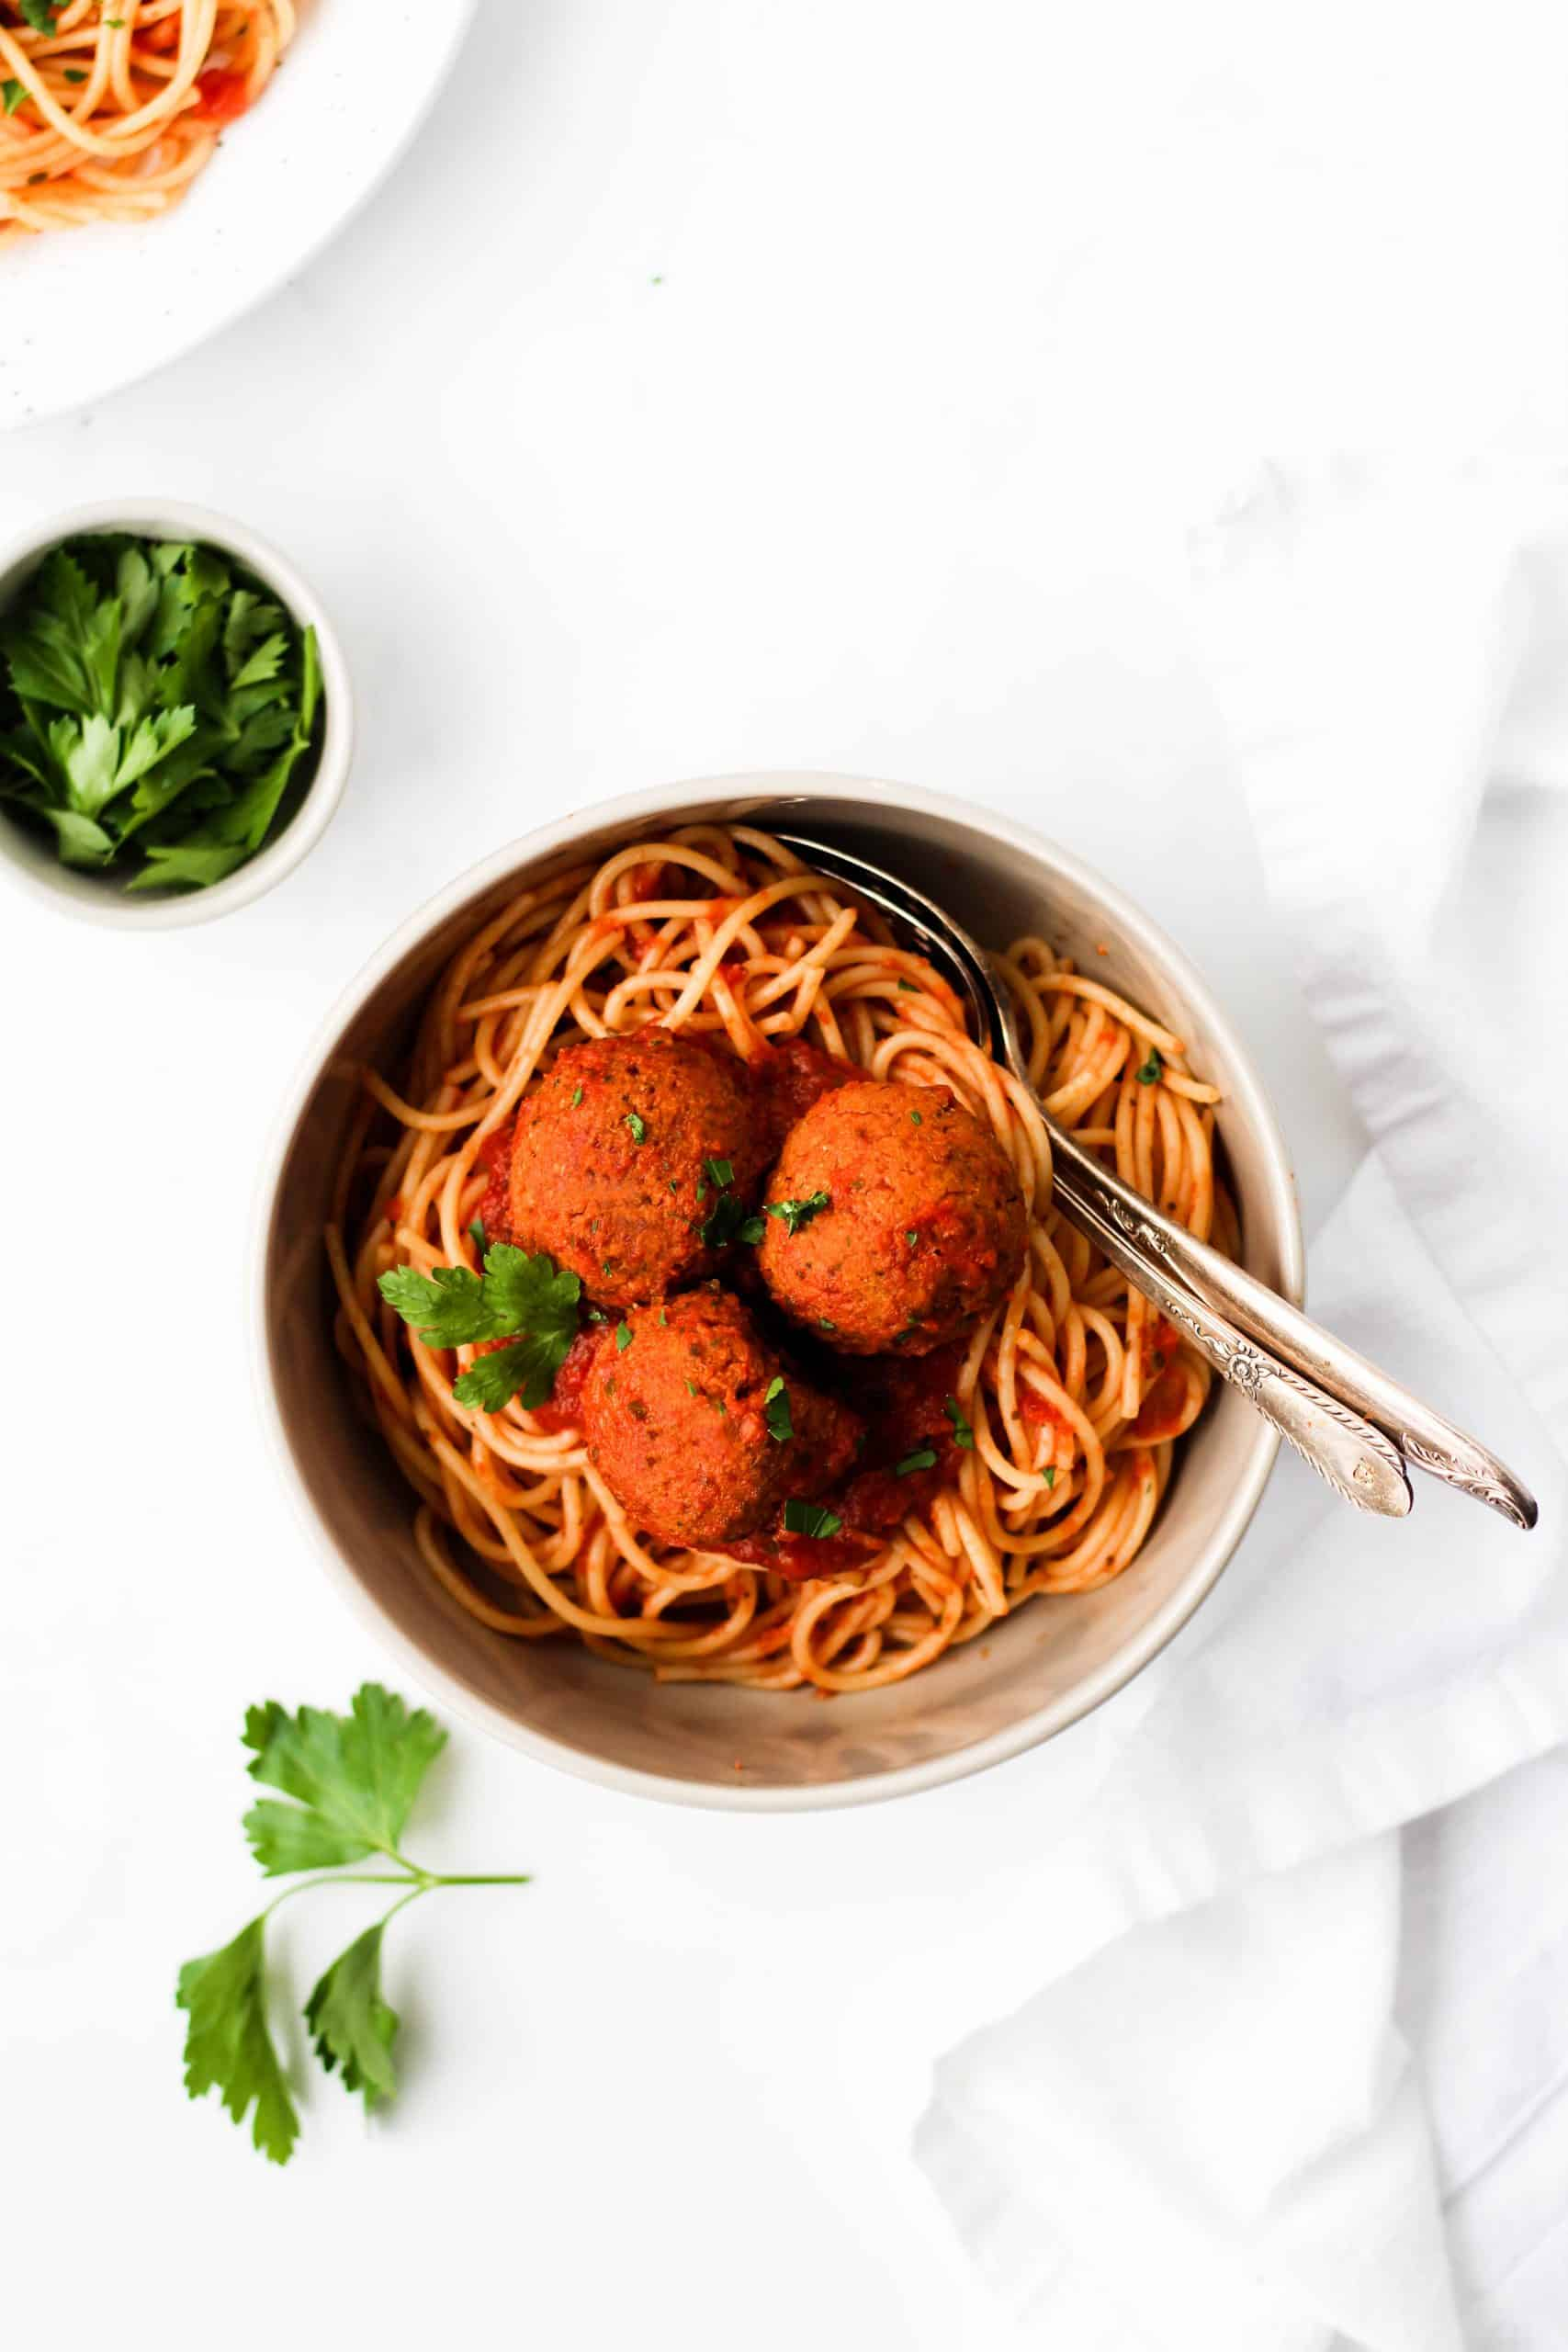 These Italian-inspired lentil meatballs are a healthy, vegan alternative to traditional meatballs. With minimal steps, they're simple to make and delicious eat!